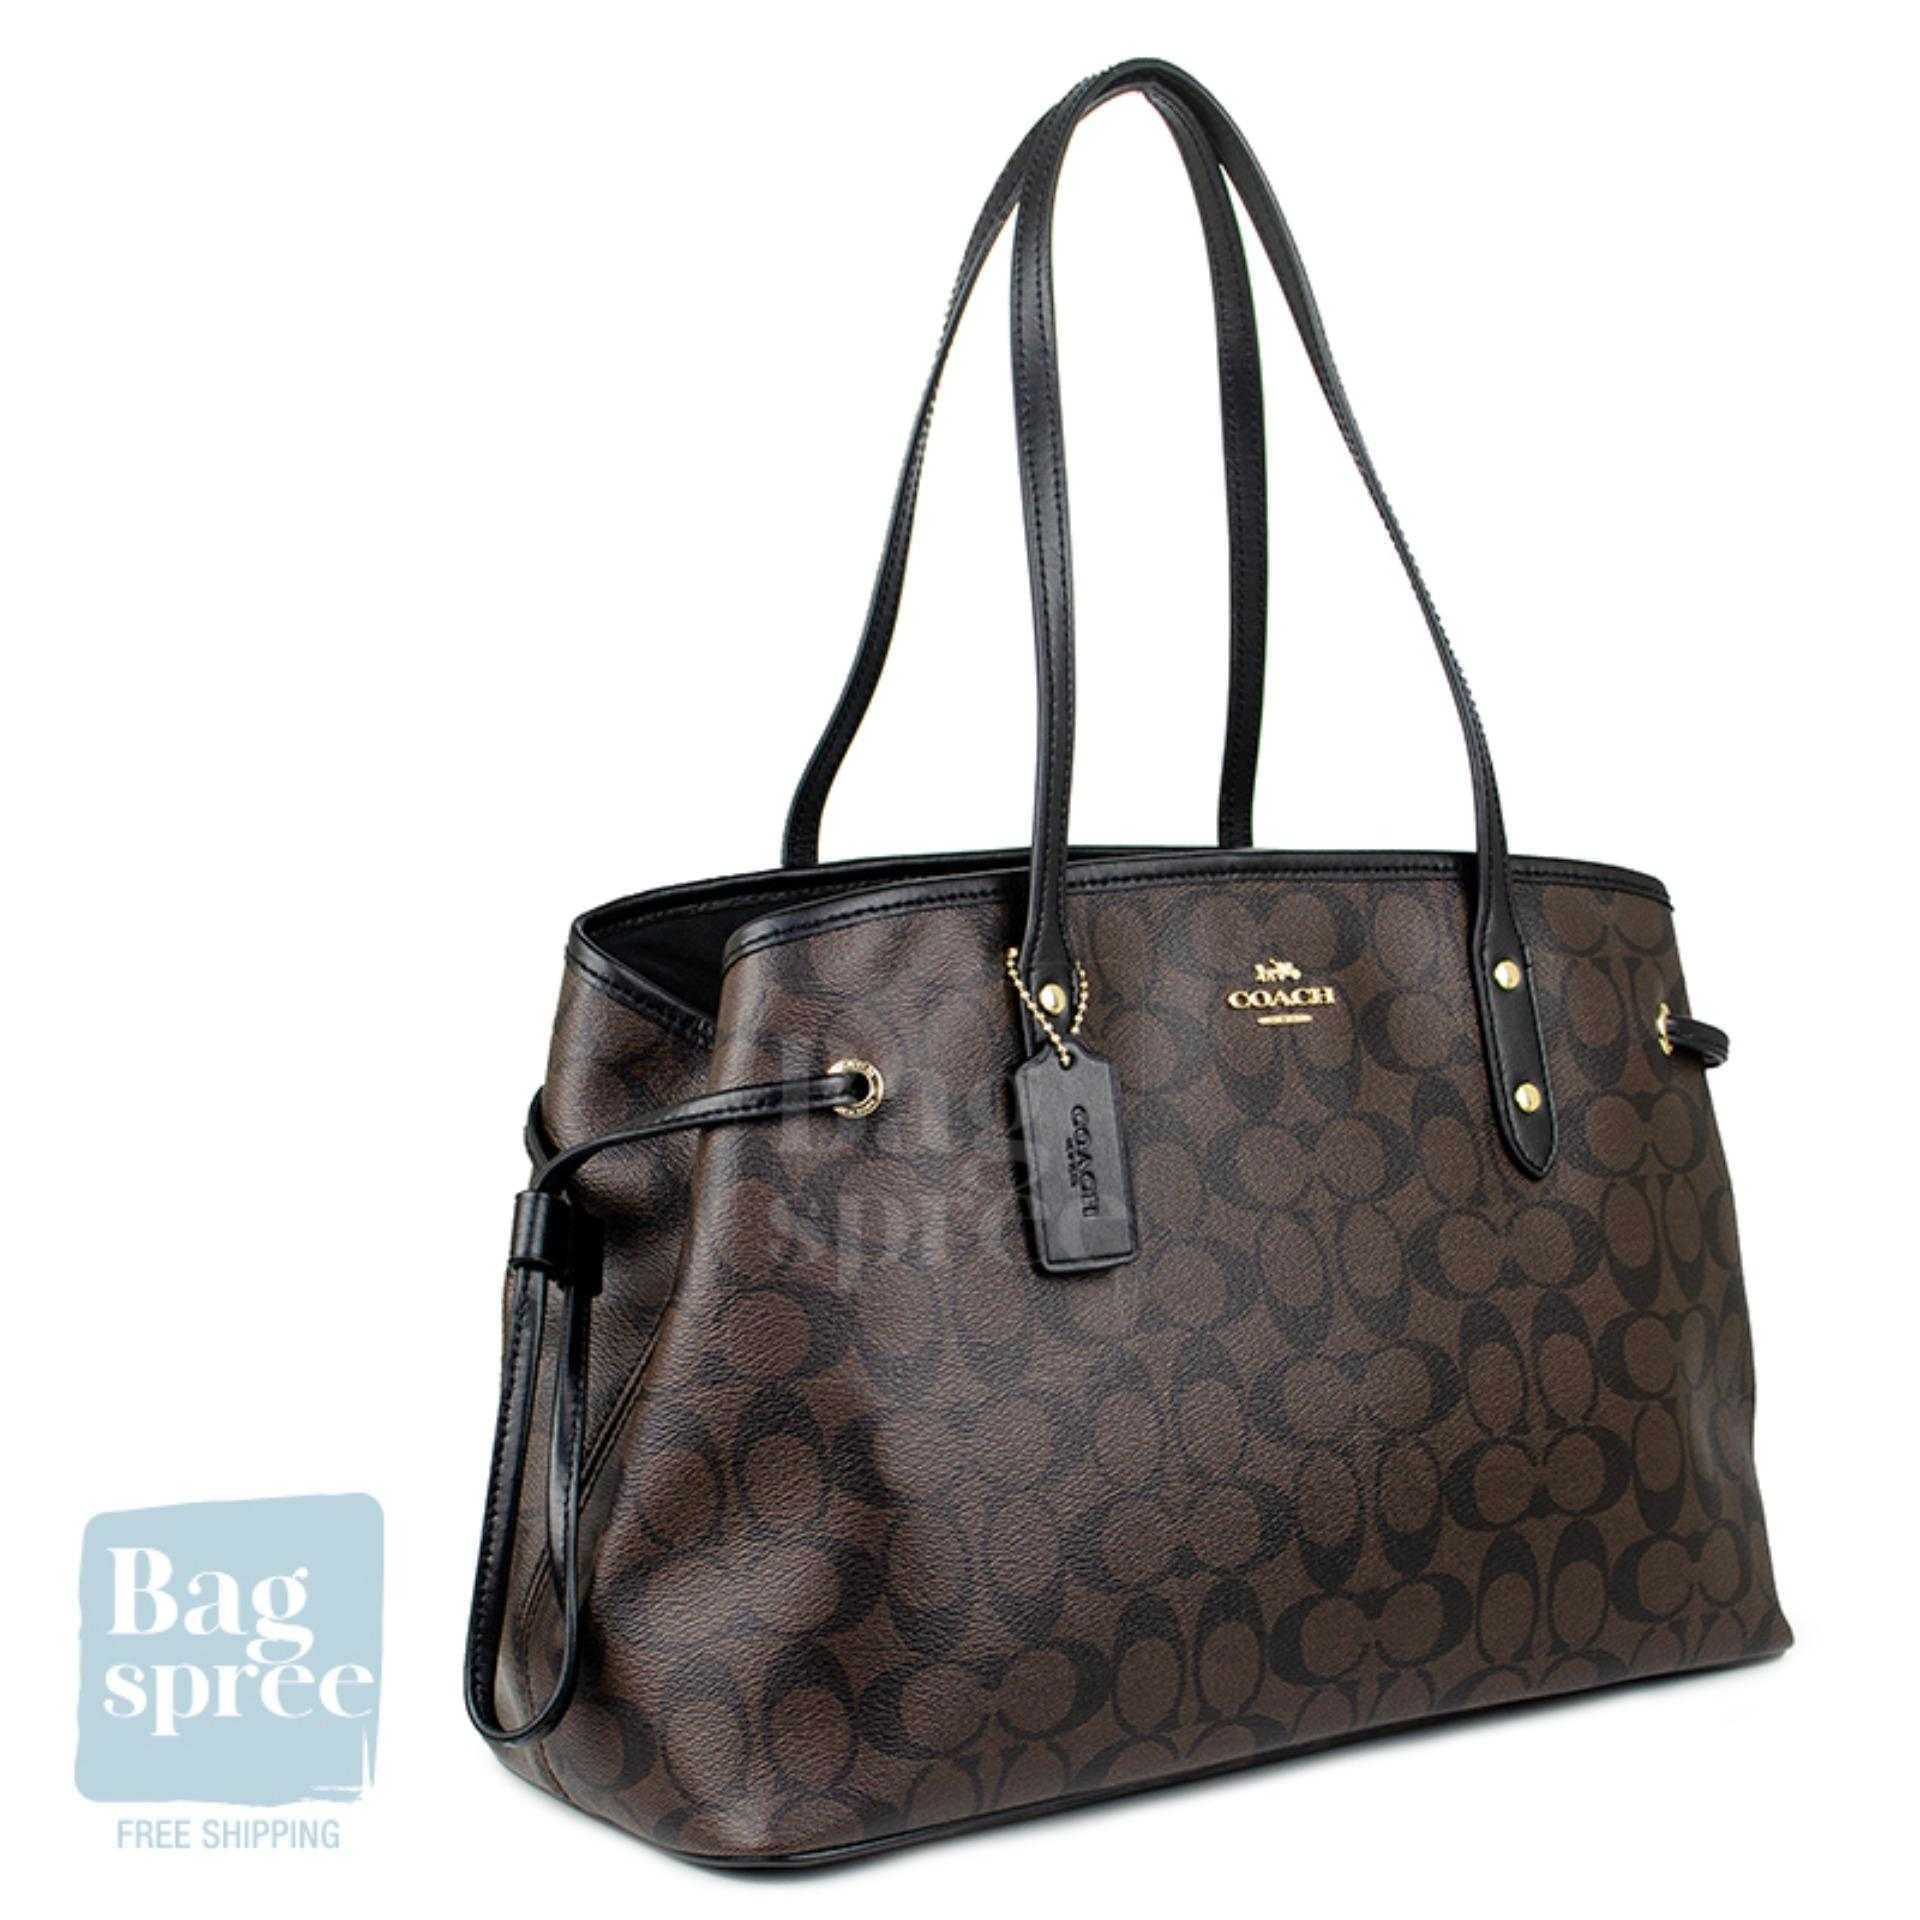 8bd889fc *Authentic & Brand New* Coach Drawstring Carryall In Signature Brown Canvas  Bag F57842 IMAA8 [Gift Receipt Provided]